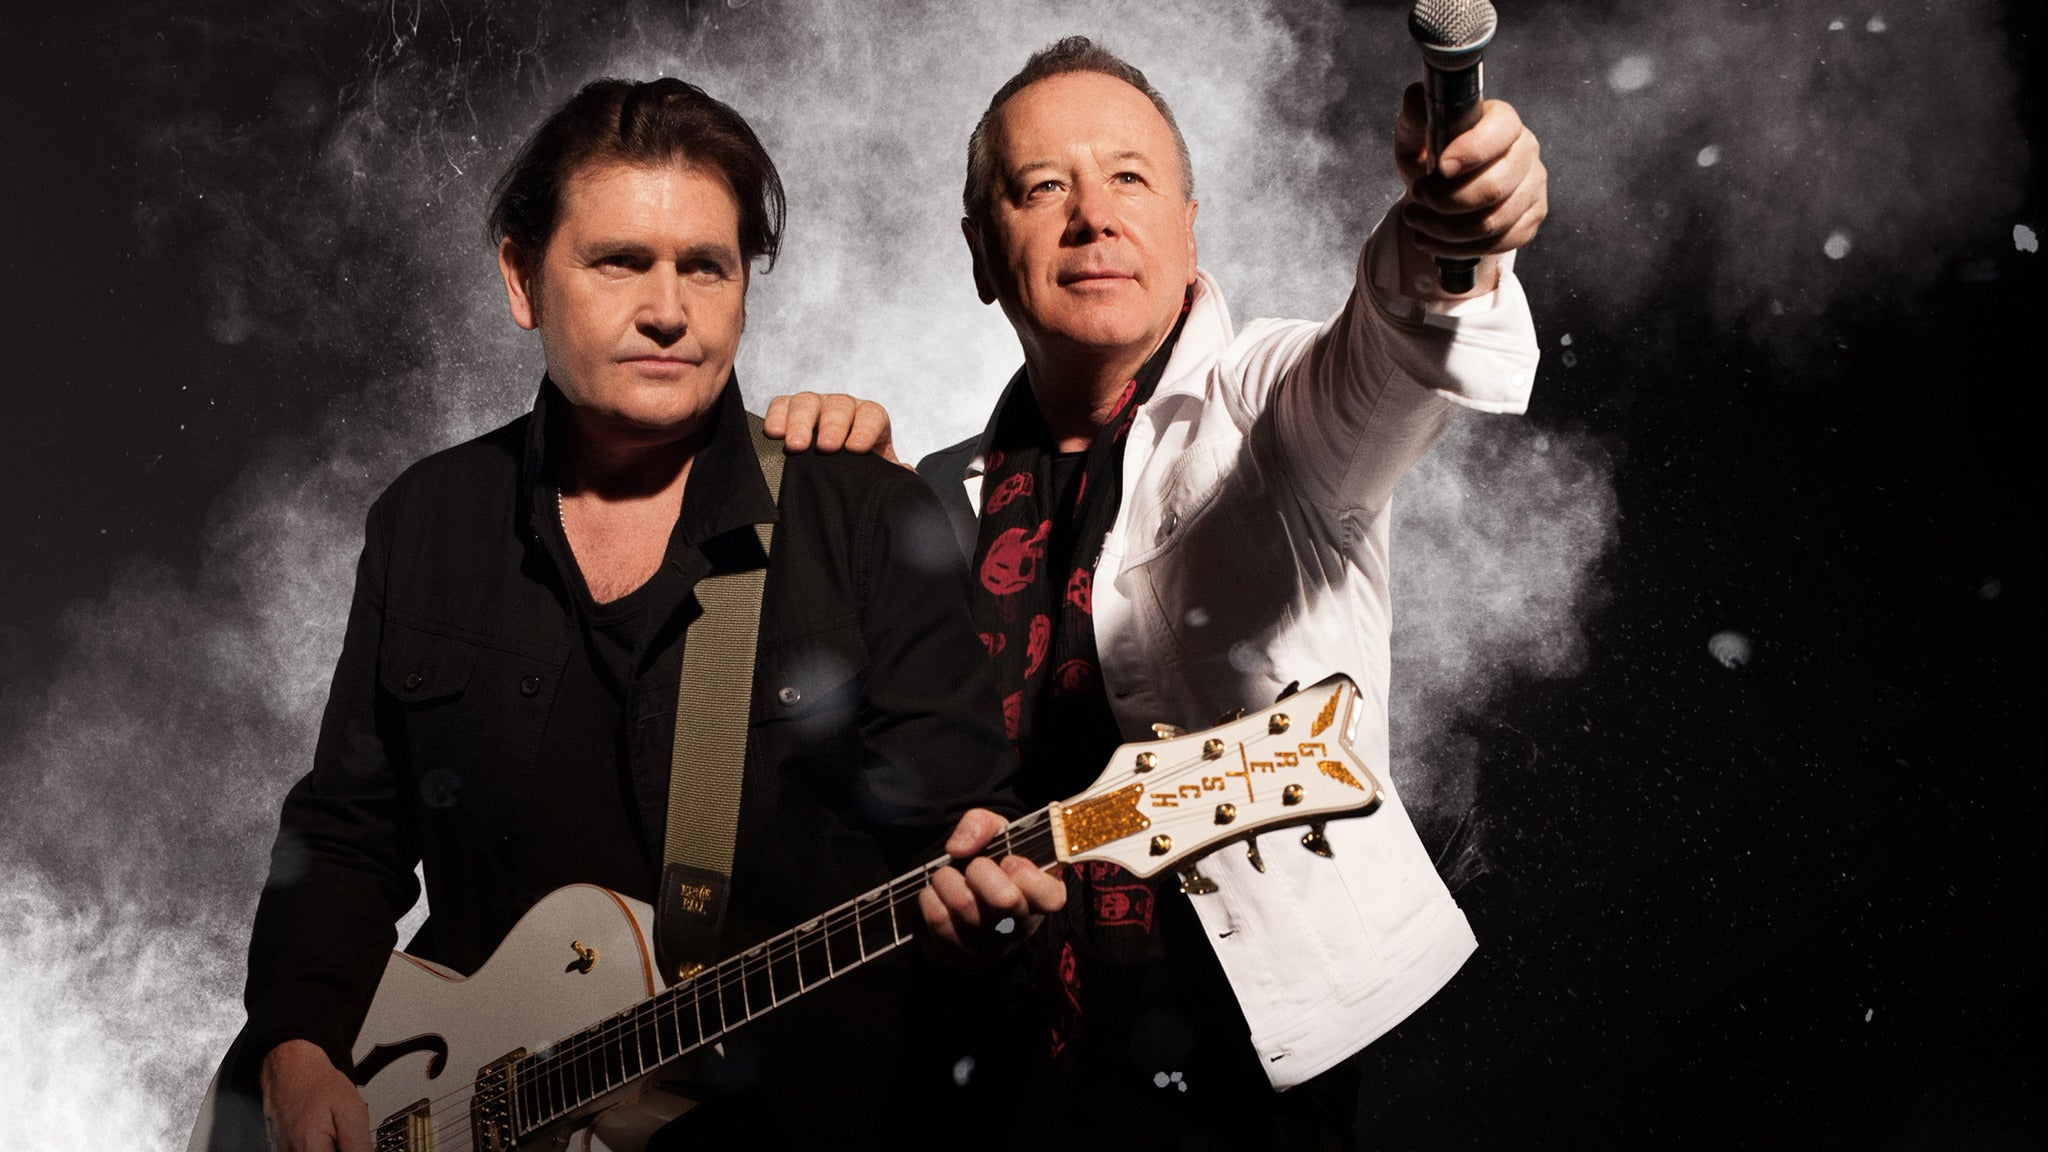 Simple Minds: Walk Between Worlds Tour at The Masonic